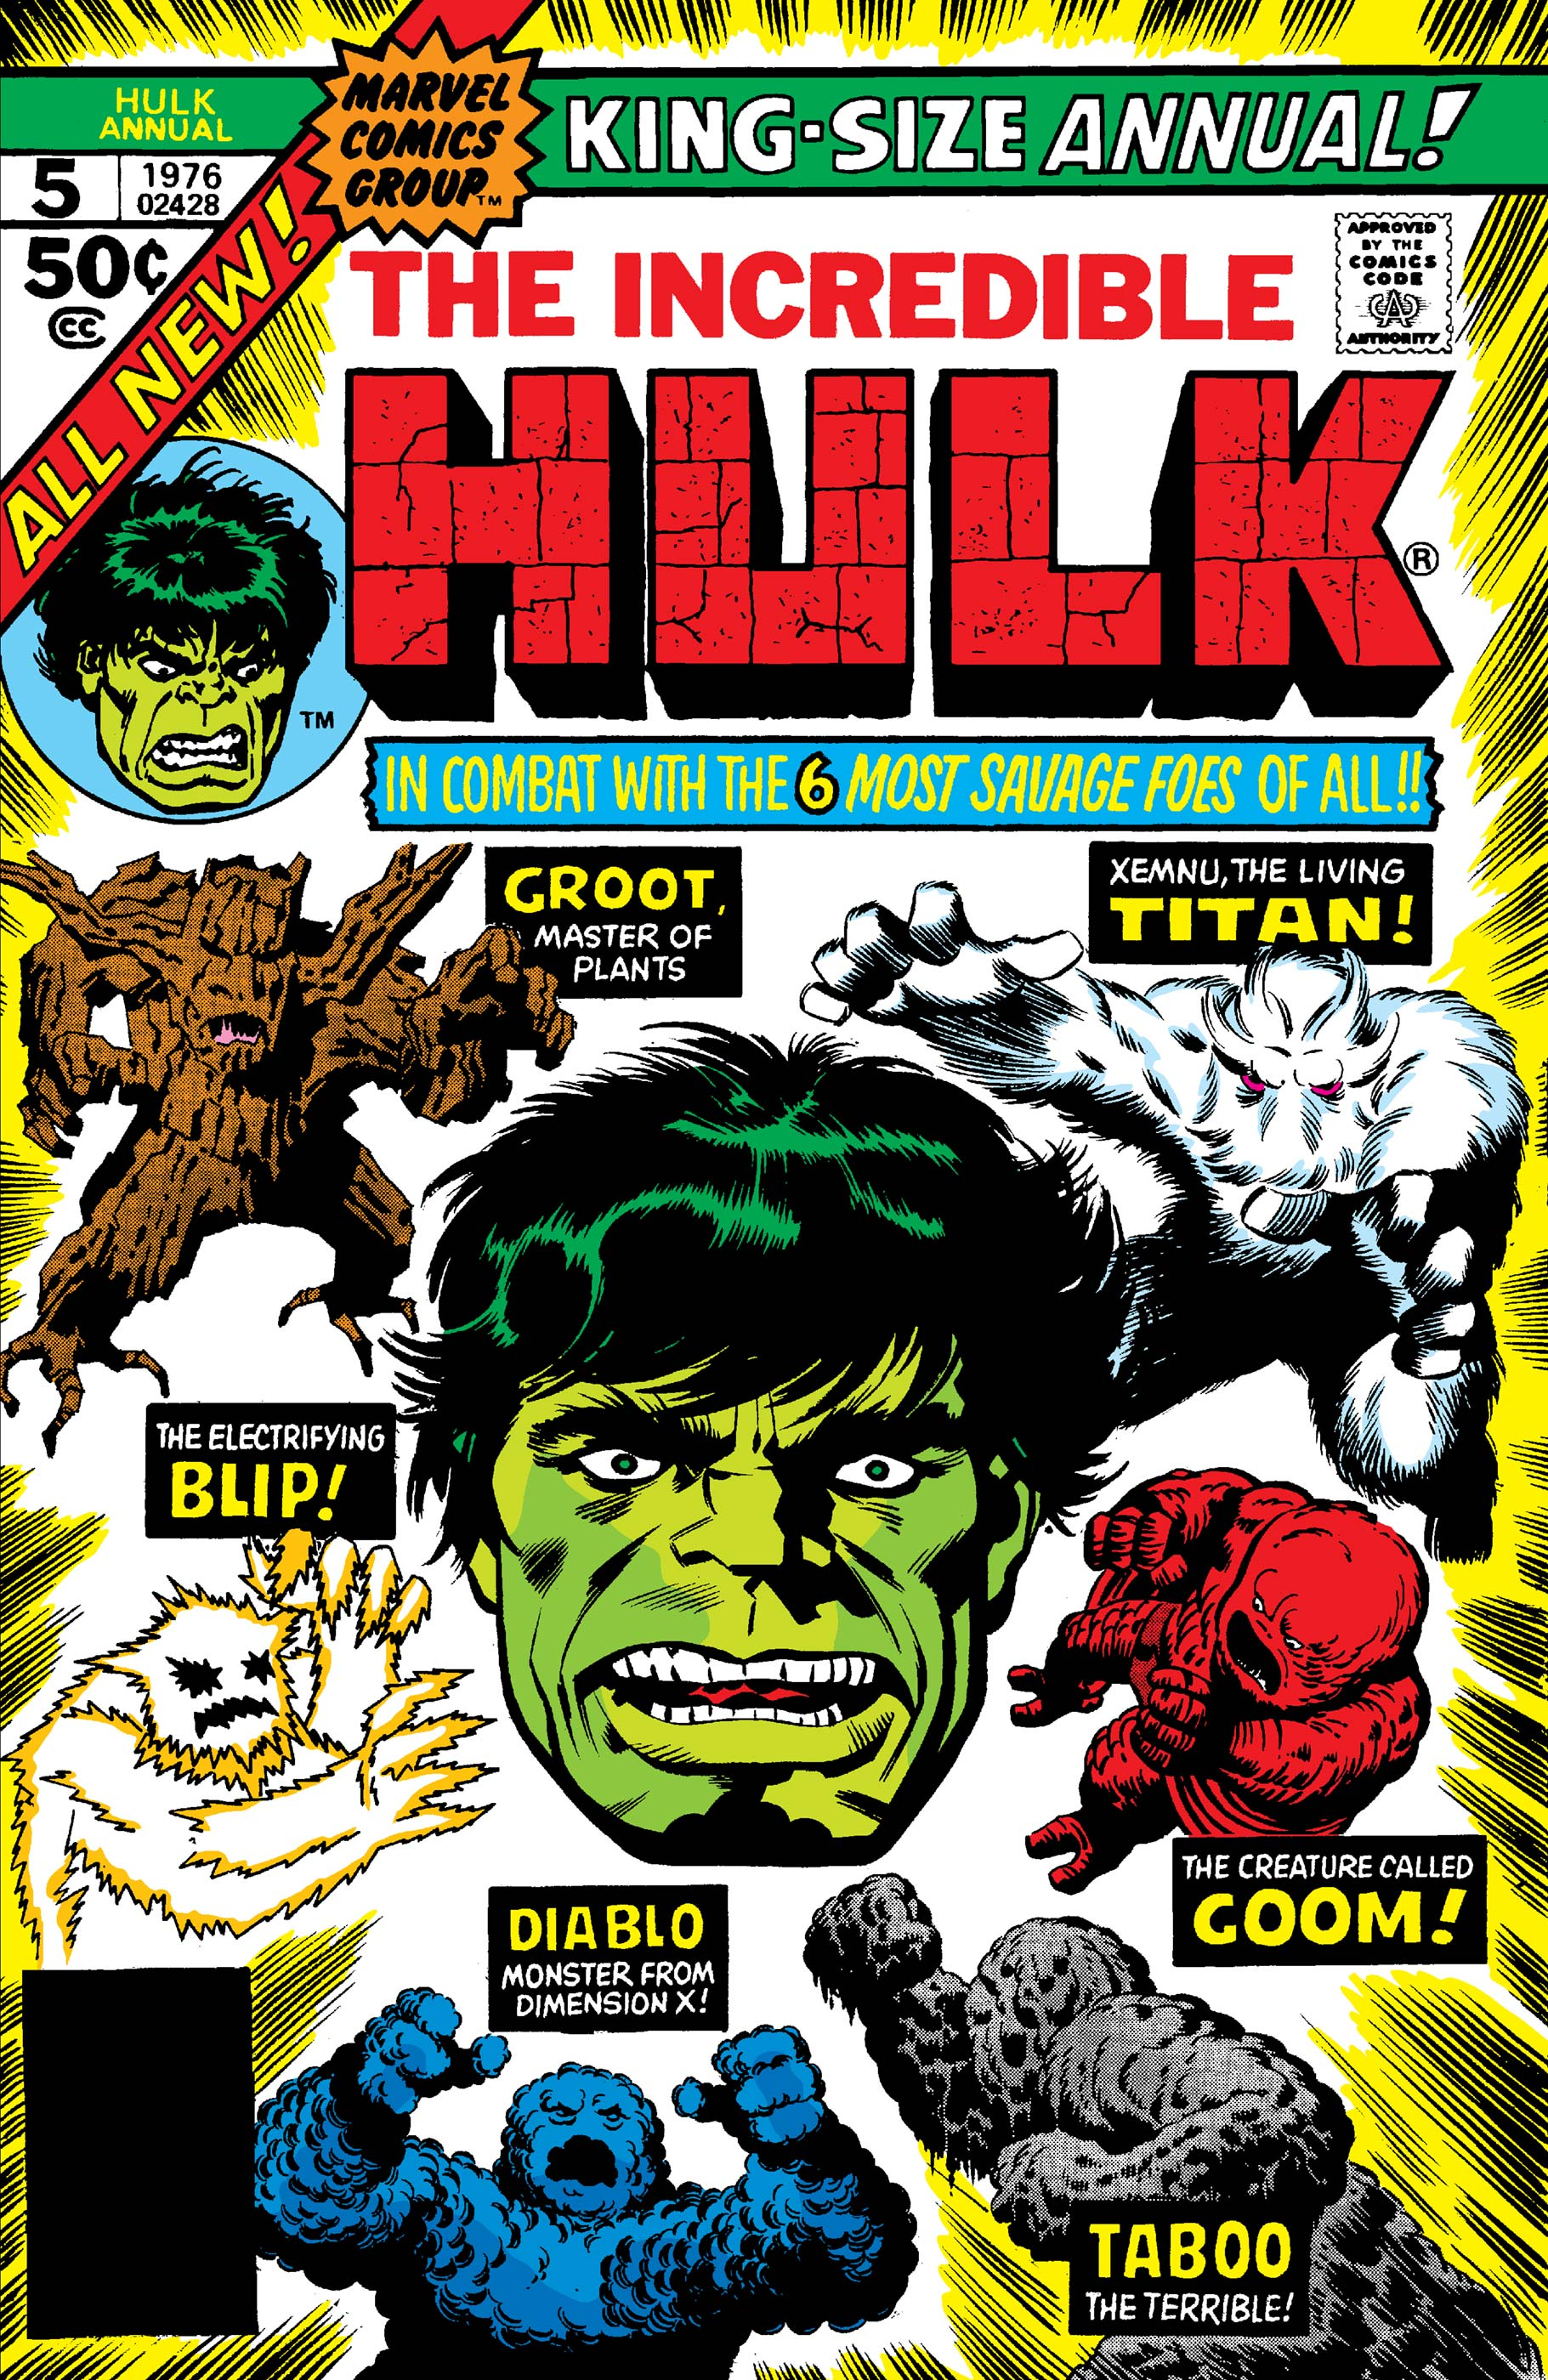 http://img1.wikia.nocookie.net/__cb20080913213127/marveldatabase/images/a/a6/Incredible_Hulk_Annual_Vol_1_5.jpg